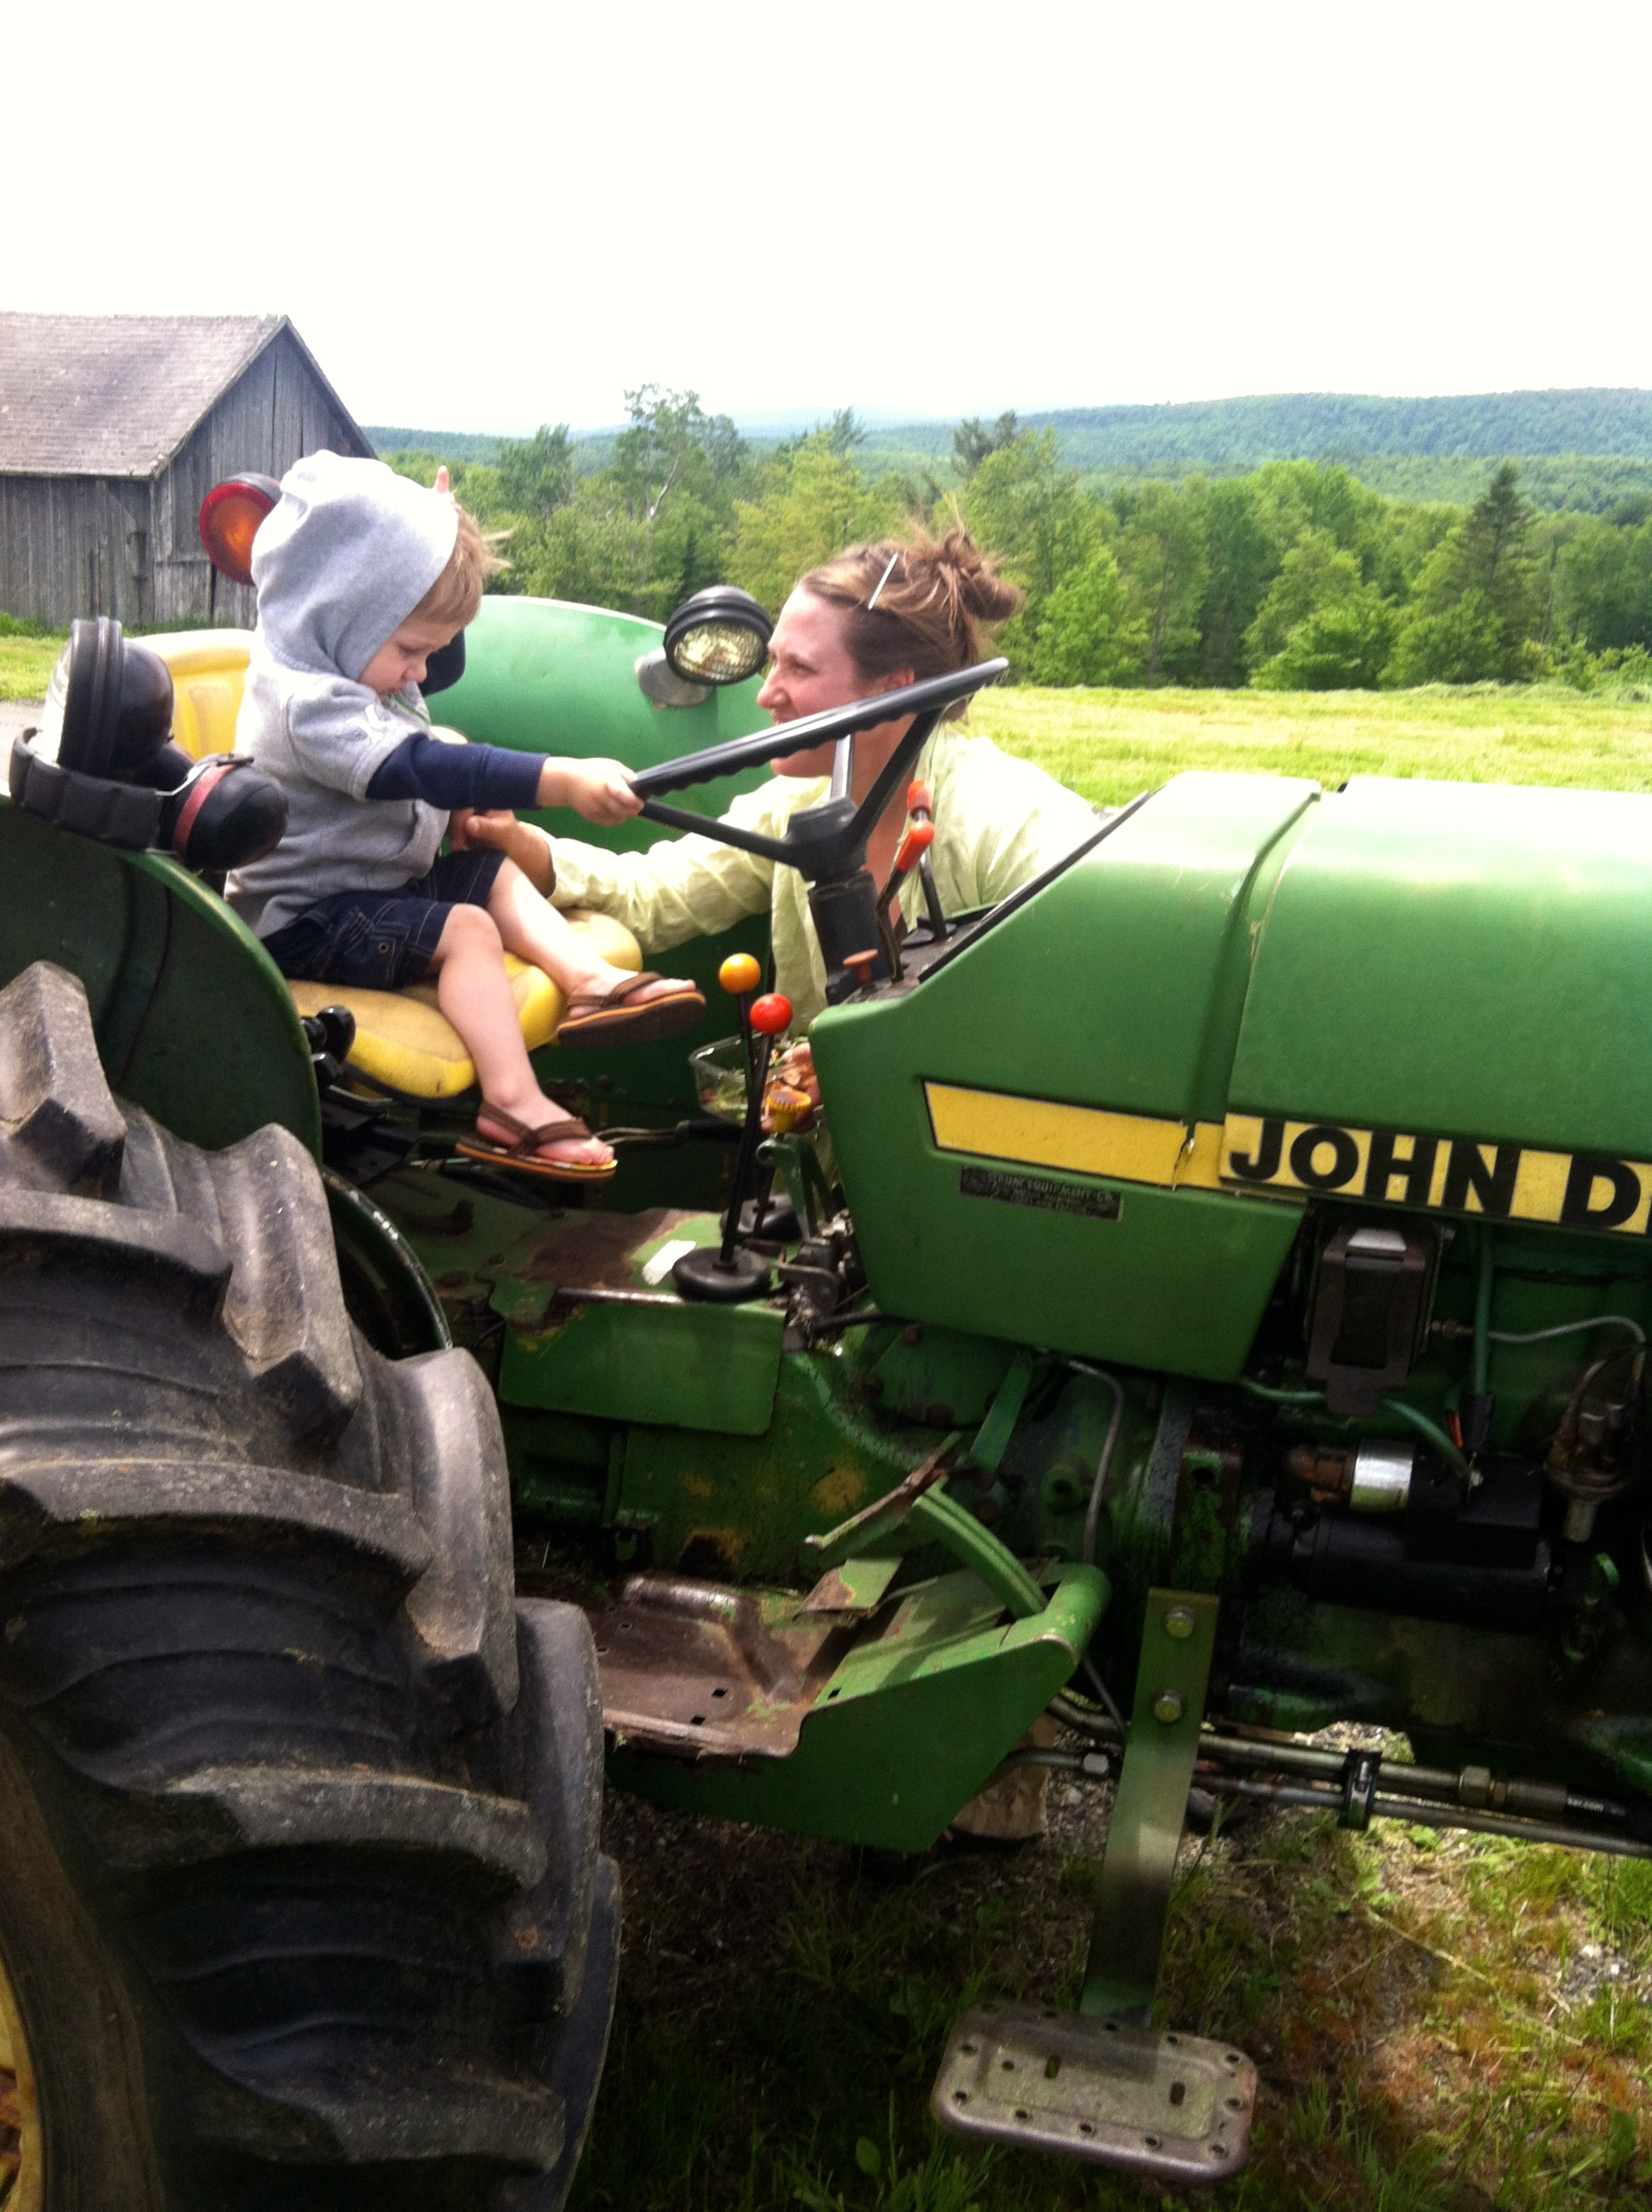 Corse Family Farm - Eli on the tractor